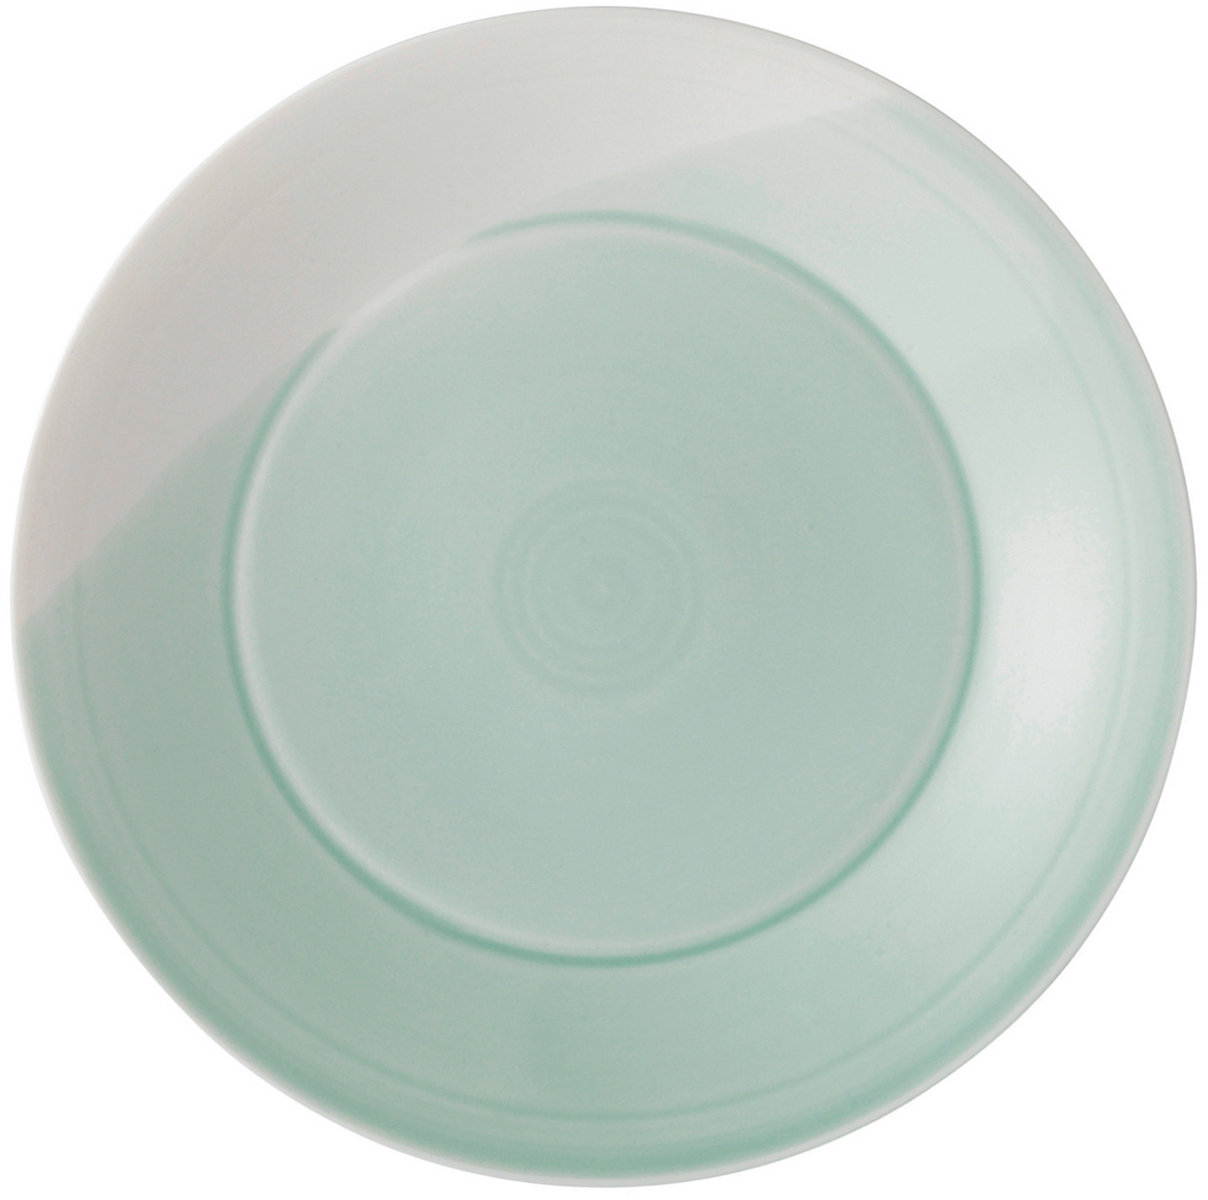 Royal Doulton Dinnerware, 1815 Green Dinner Plate - Dinnerware - Dining & Entertaining - Macy's